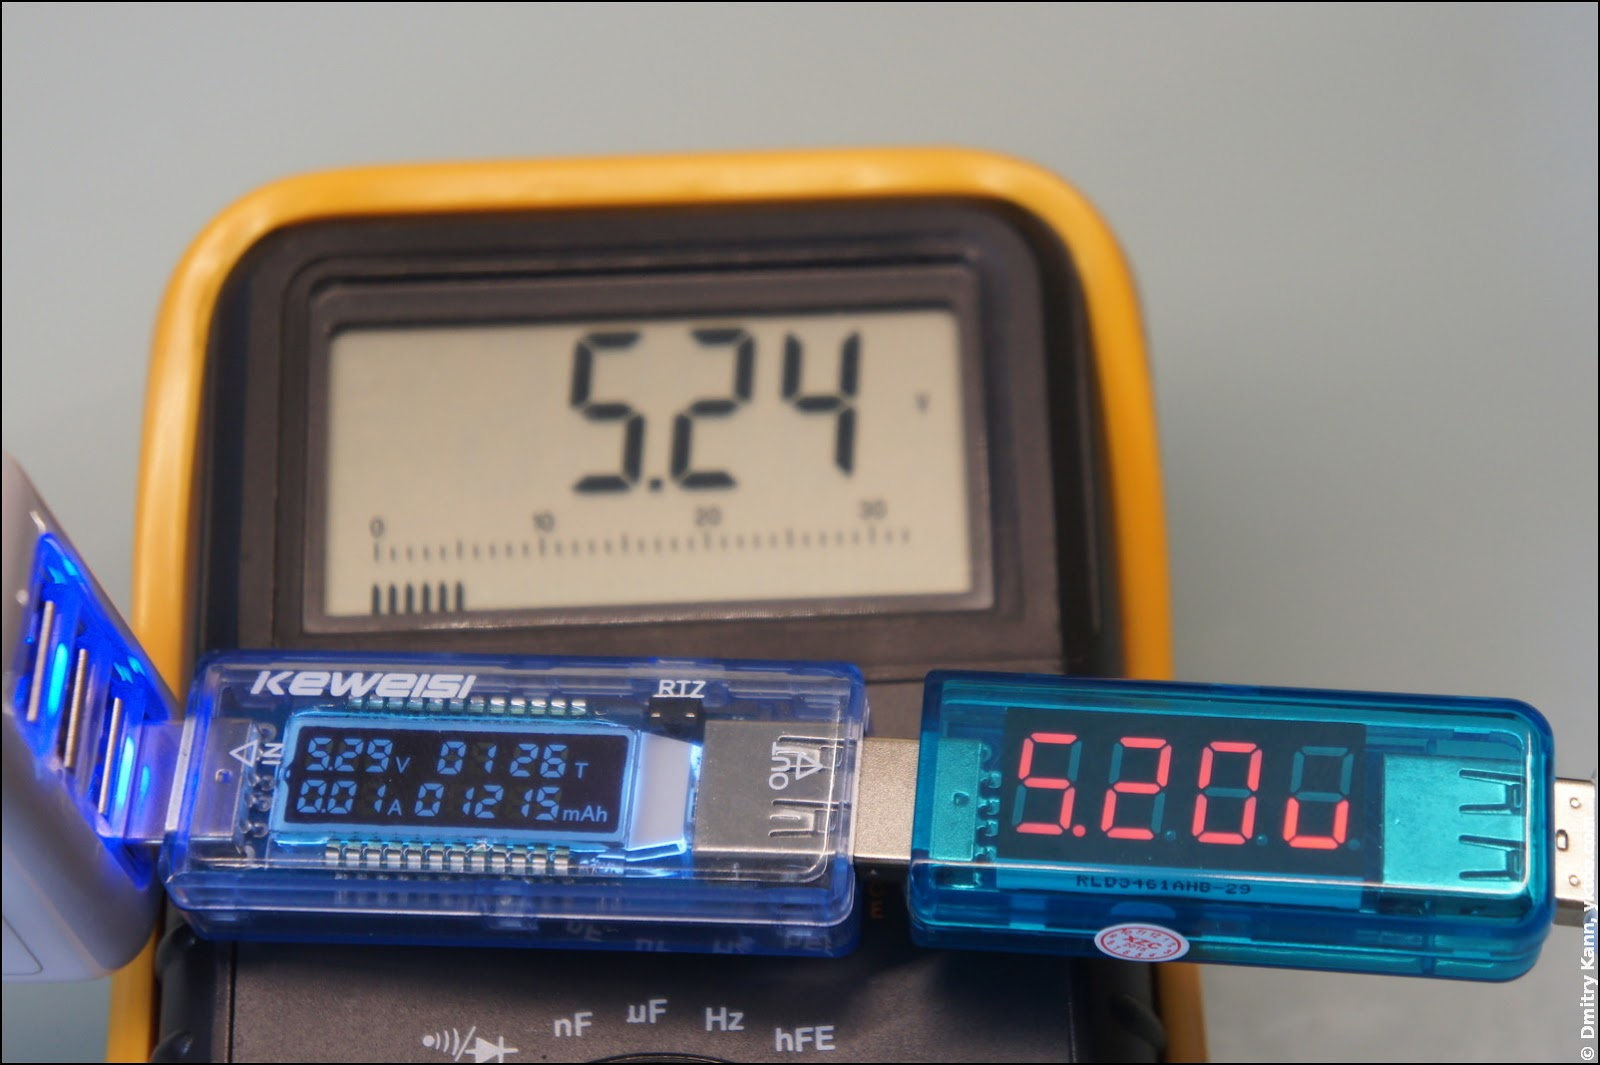 Voltage check with a multimeter.